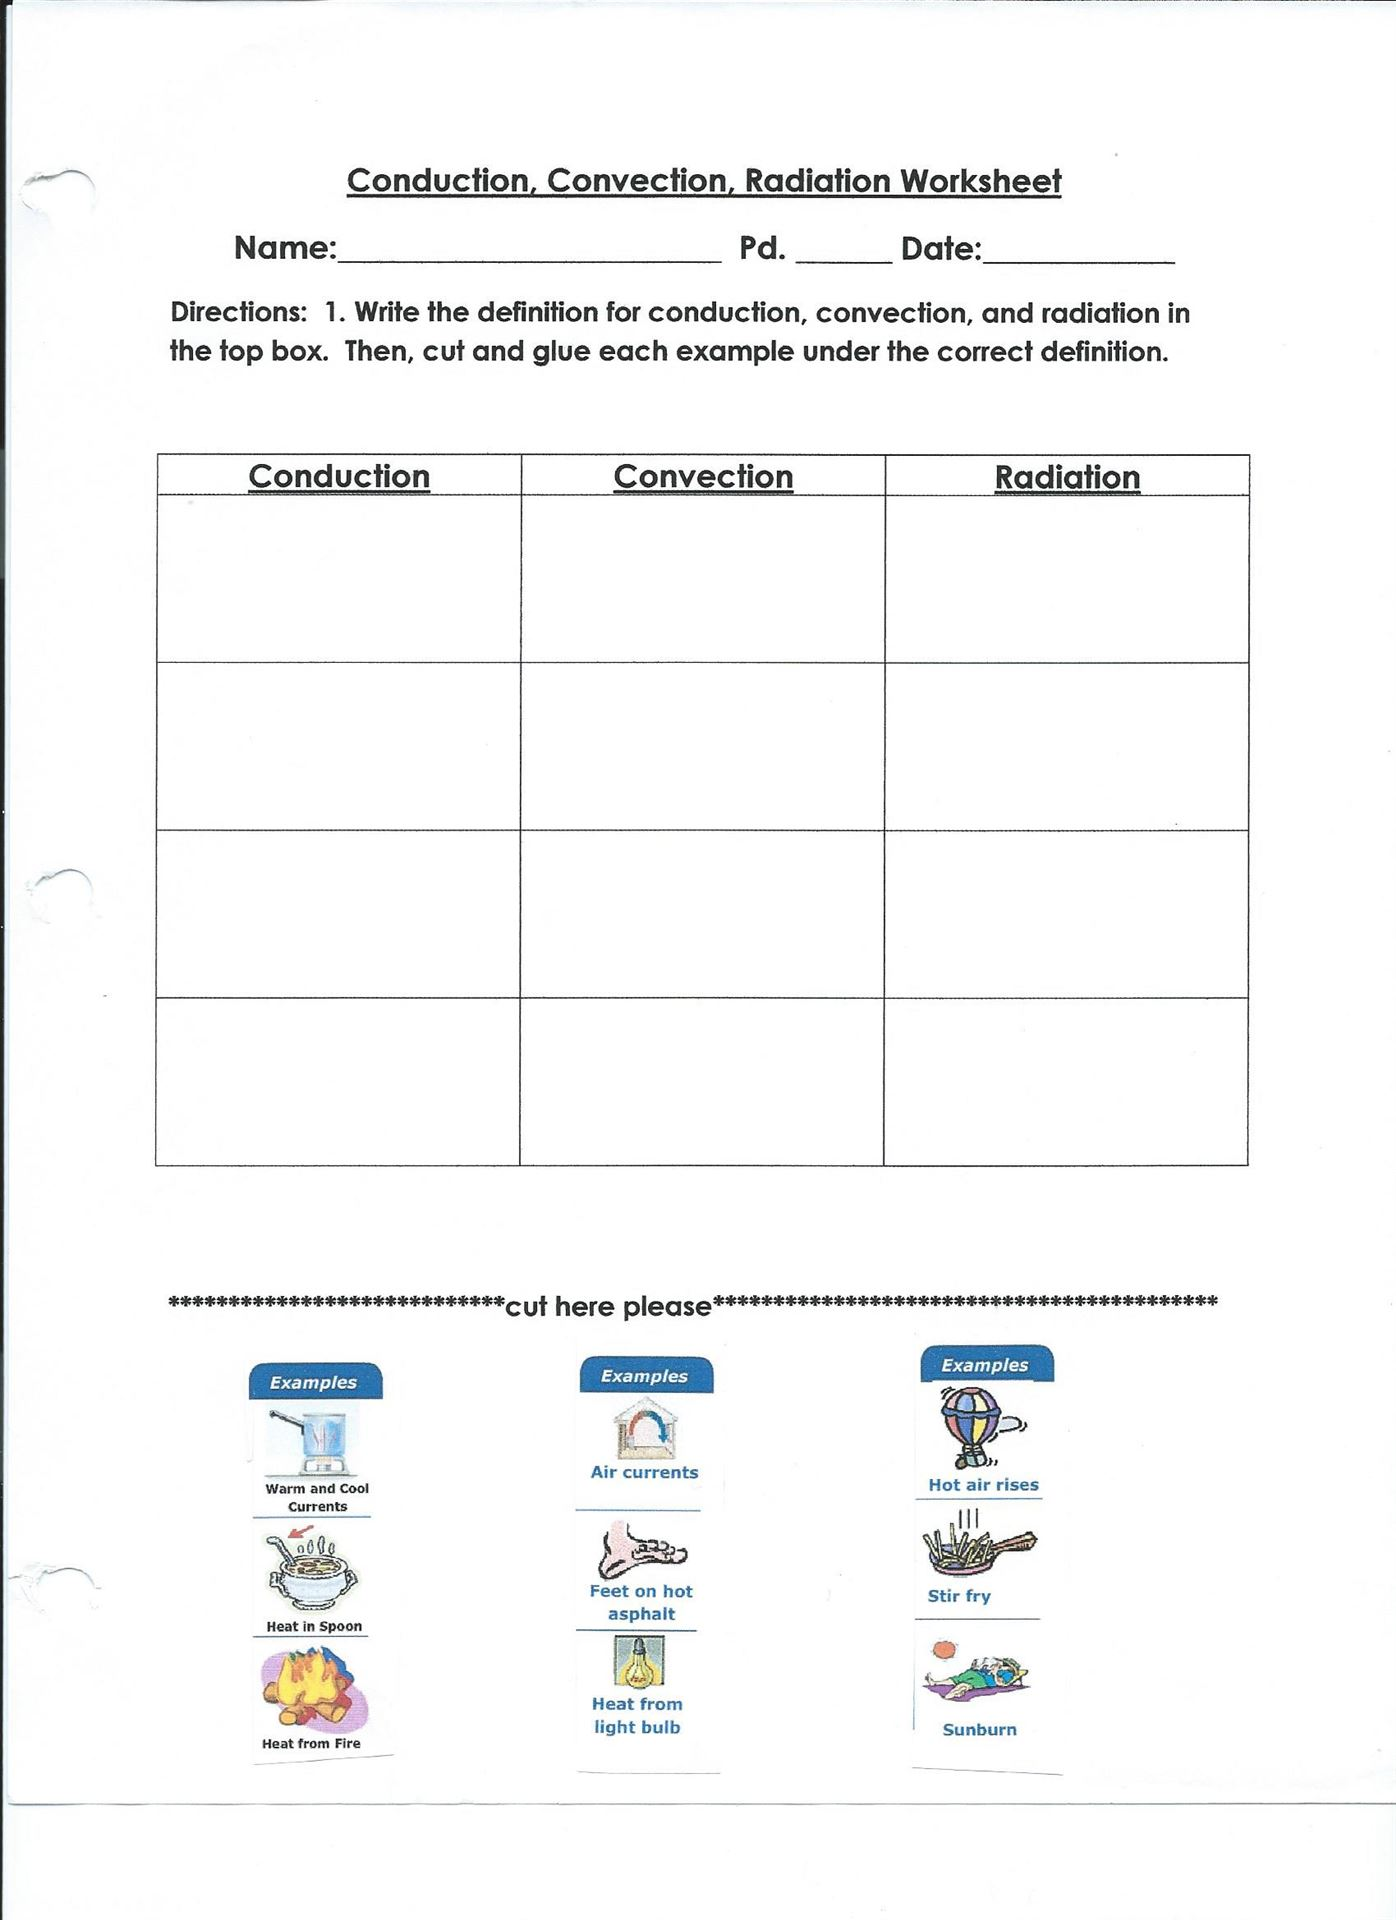 Conduction Convection Radiation Worksheet - Delibertad